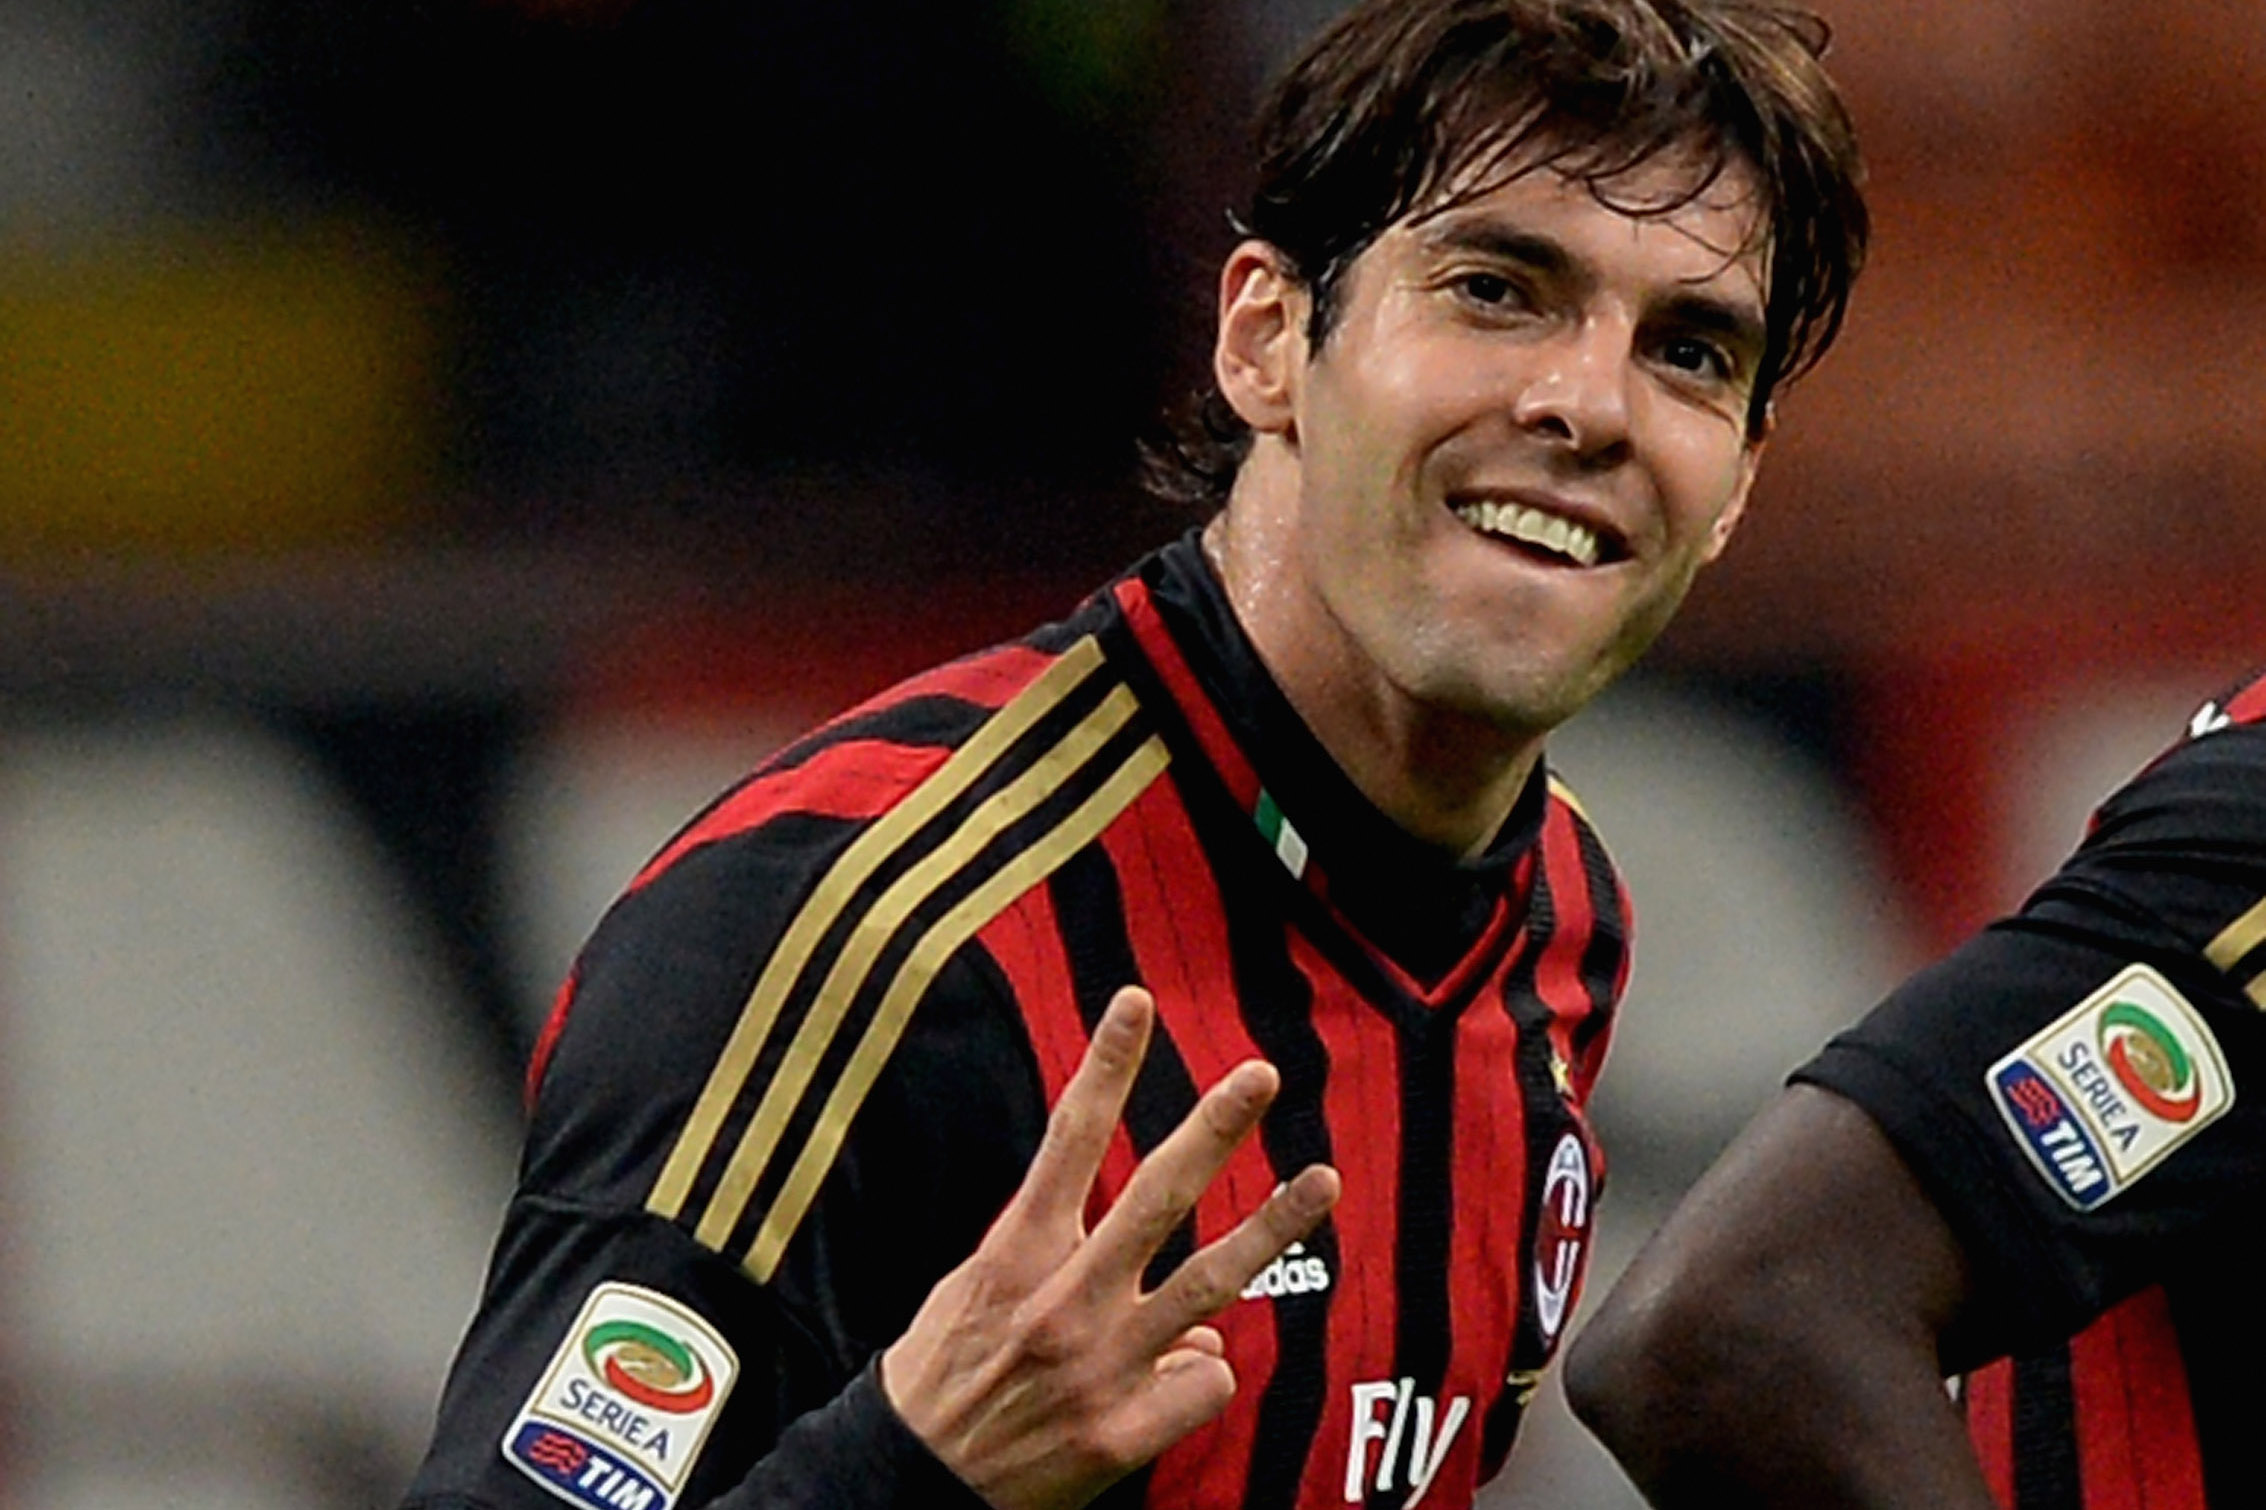 Kaka of AC Milan celebrates scoring the second goal during the Serie A match between AC Milan and AC Chievo Verona at San Siro Stadium on March 29, 2014 in Milan, Italy.